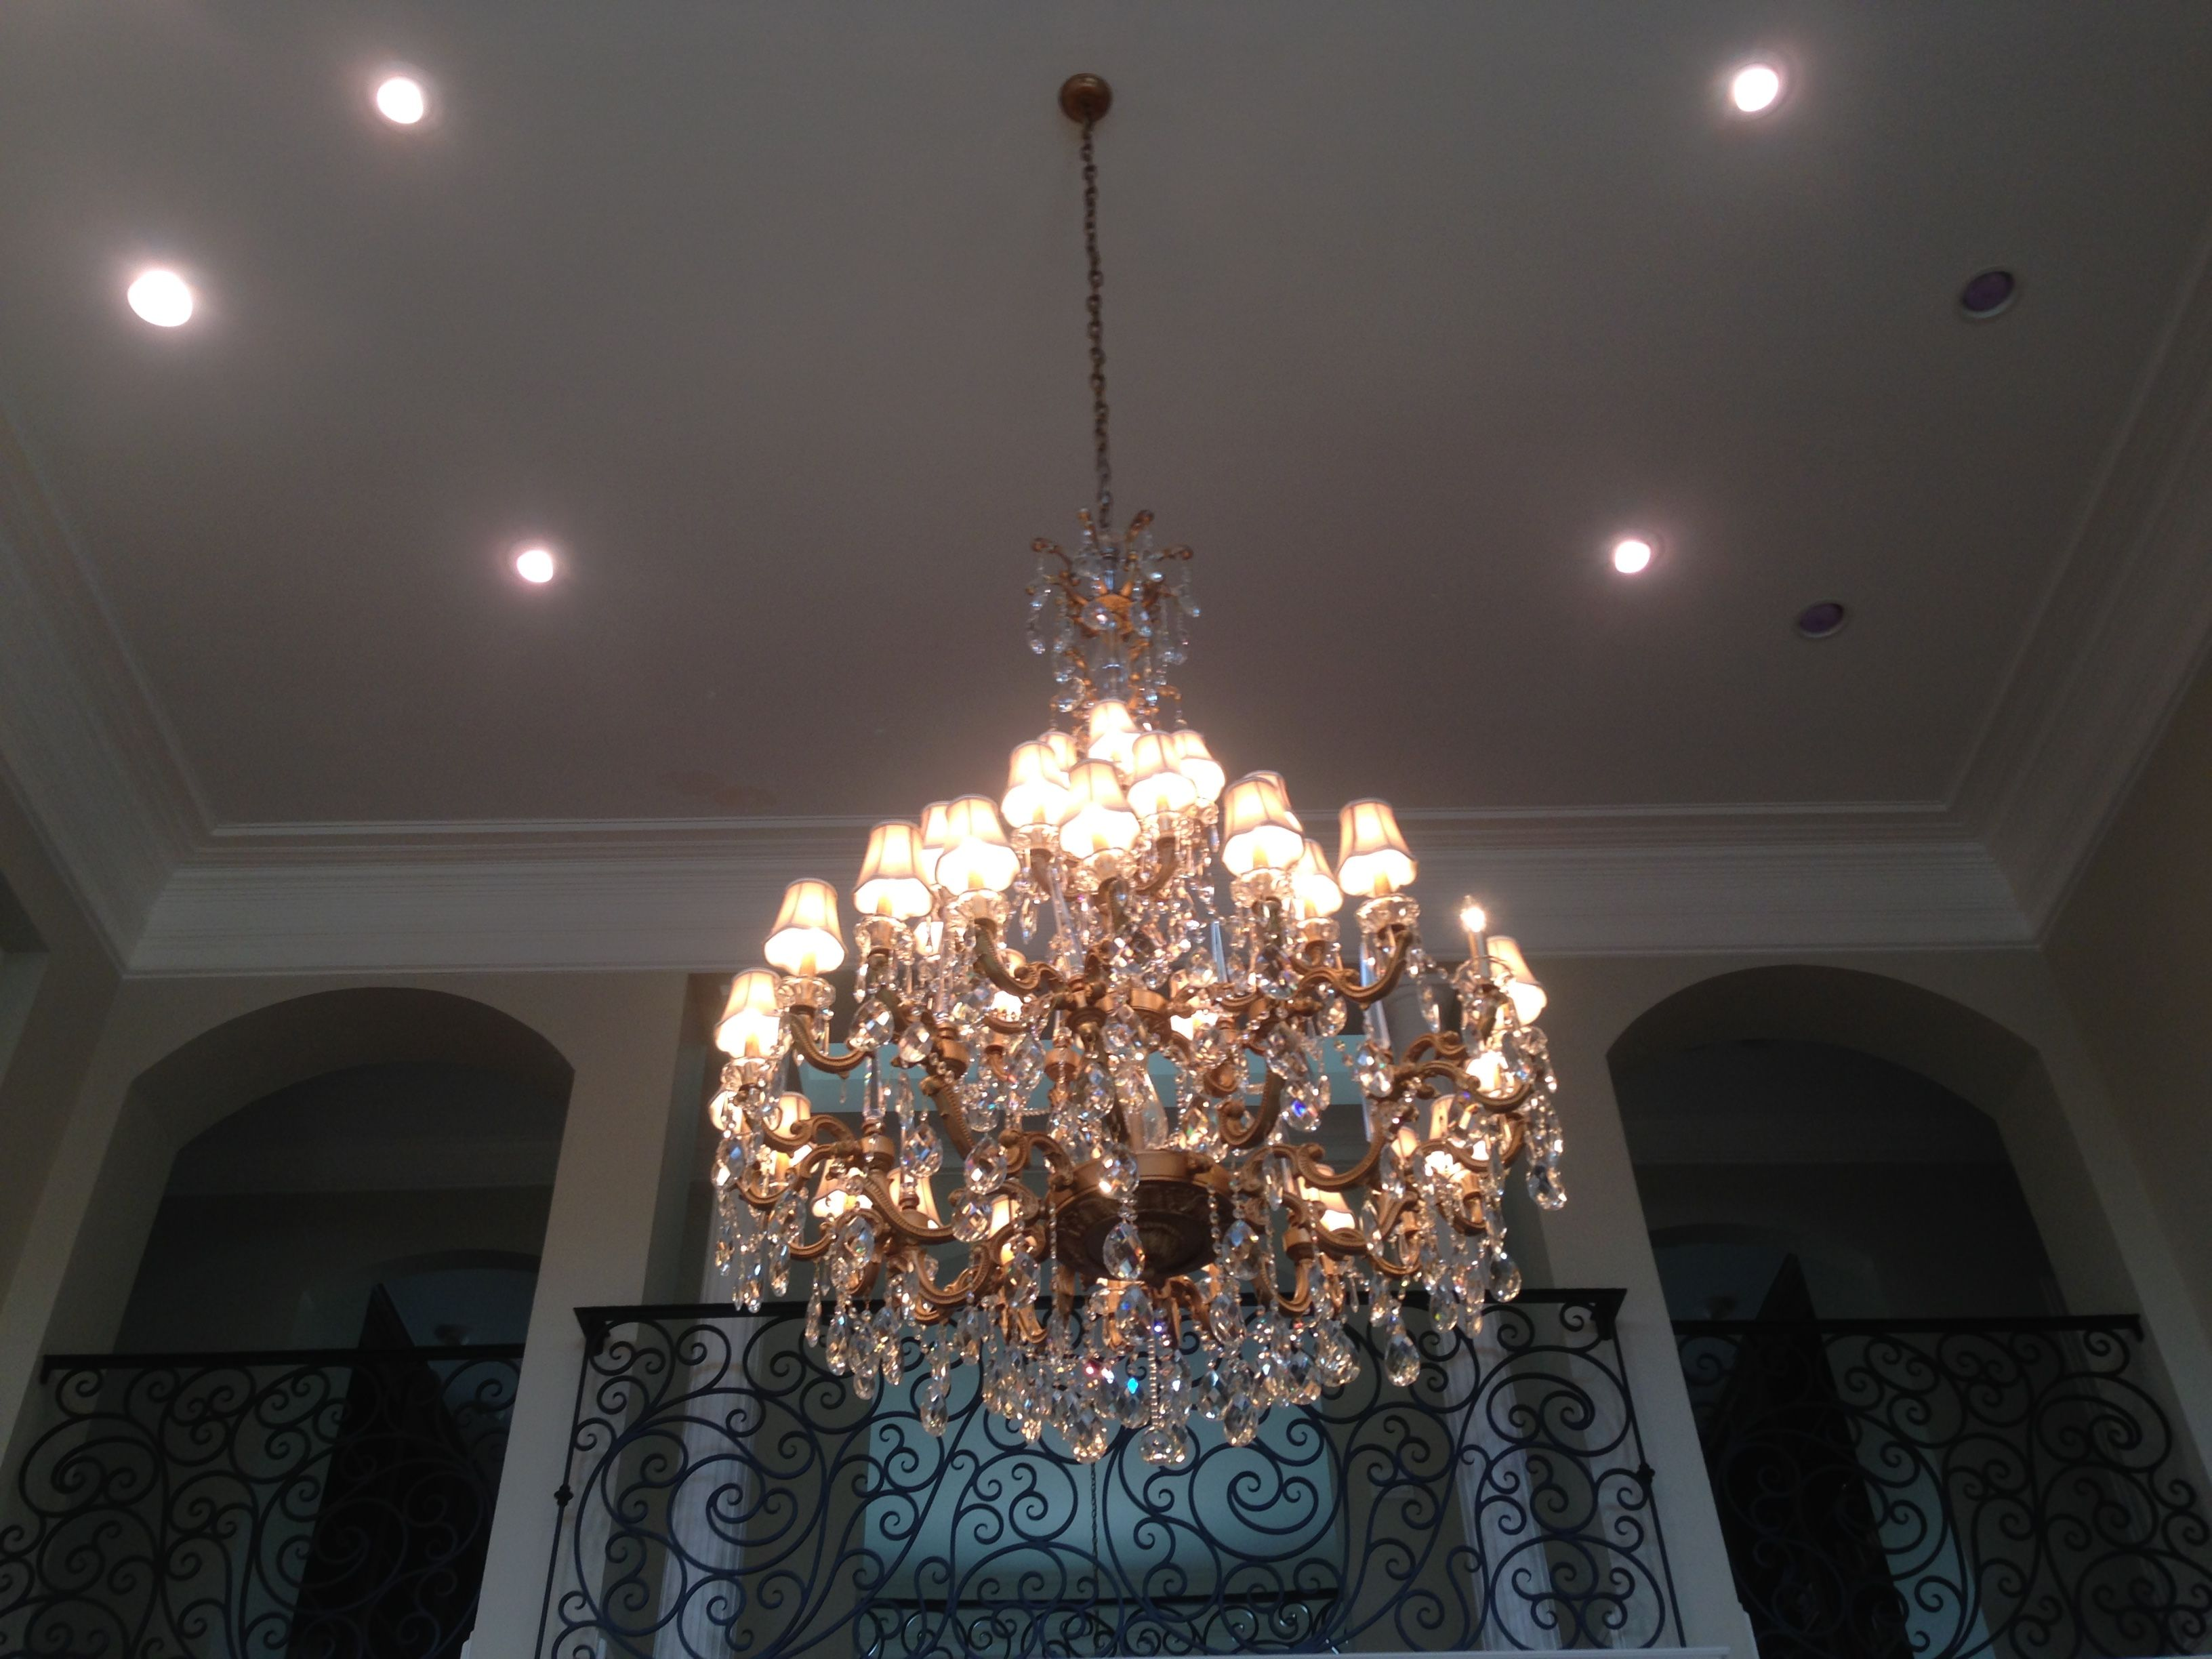 Chandelier installation irving tx call tlc electrical today at chandelier installation irving tx call tlc electrical today at 817 424 2684 arubaitofo Images